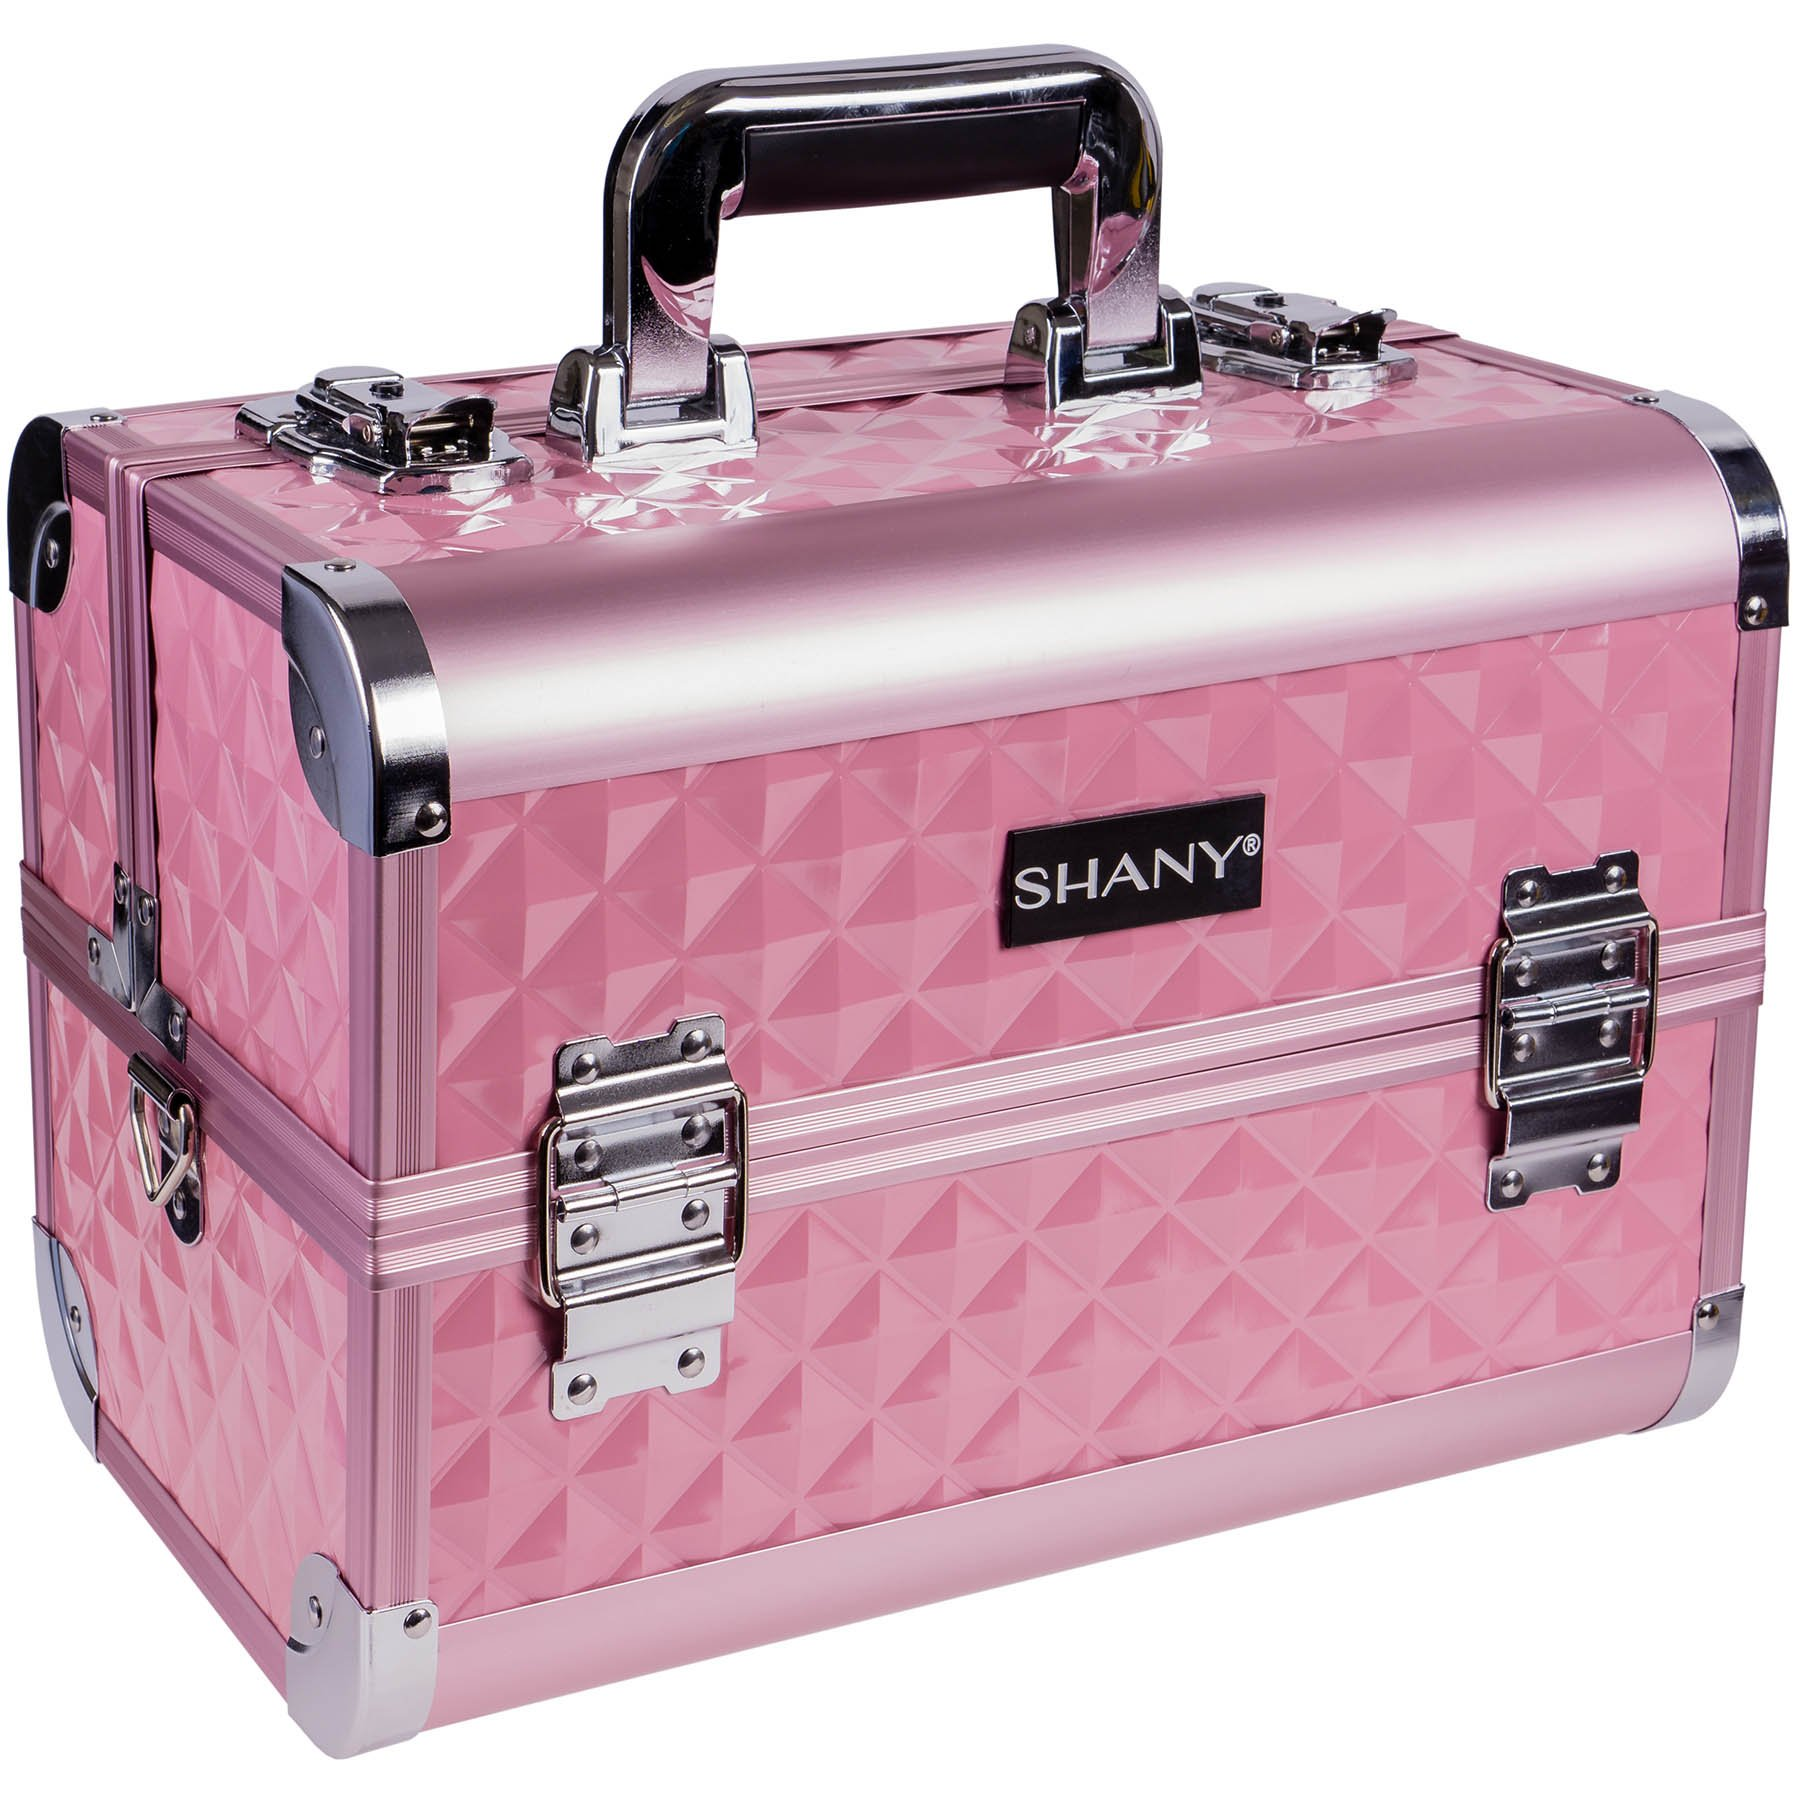 SHANY Premier Fantasy Collection Makeup Artists Cosmetics Train Case - Pink diamond